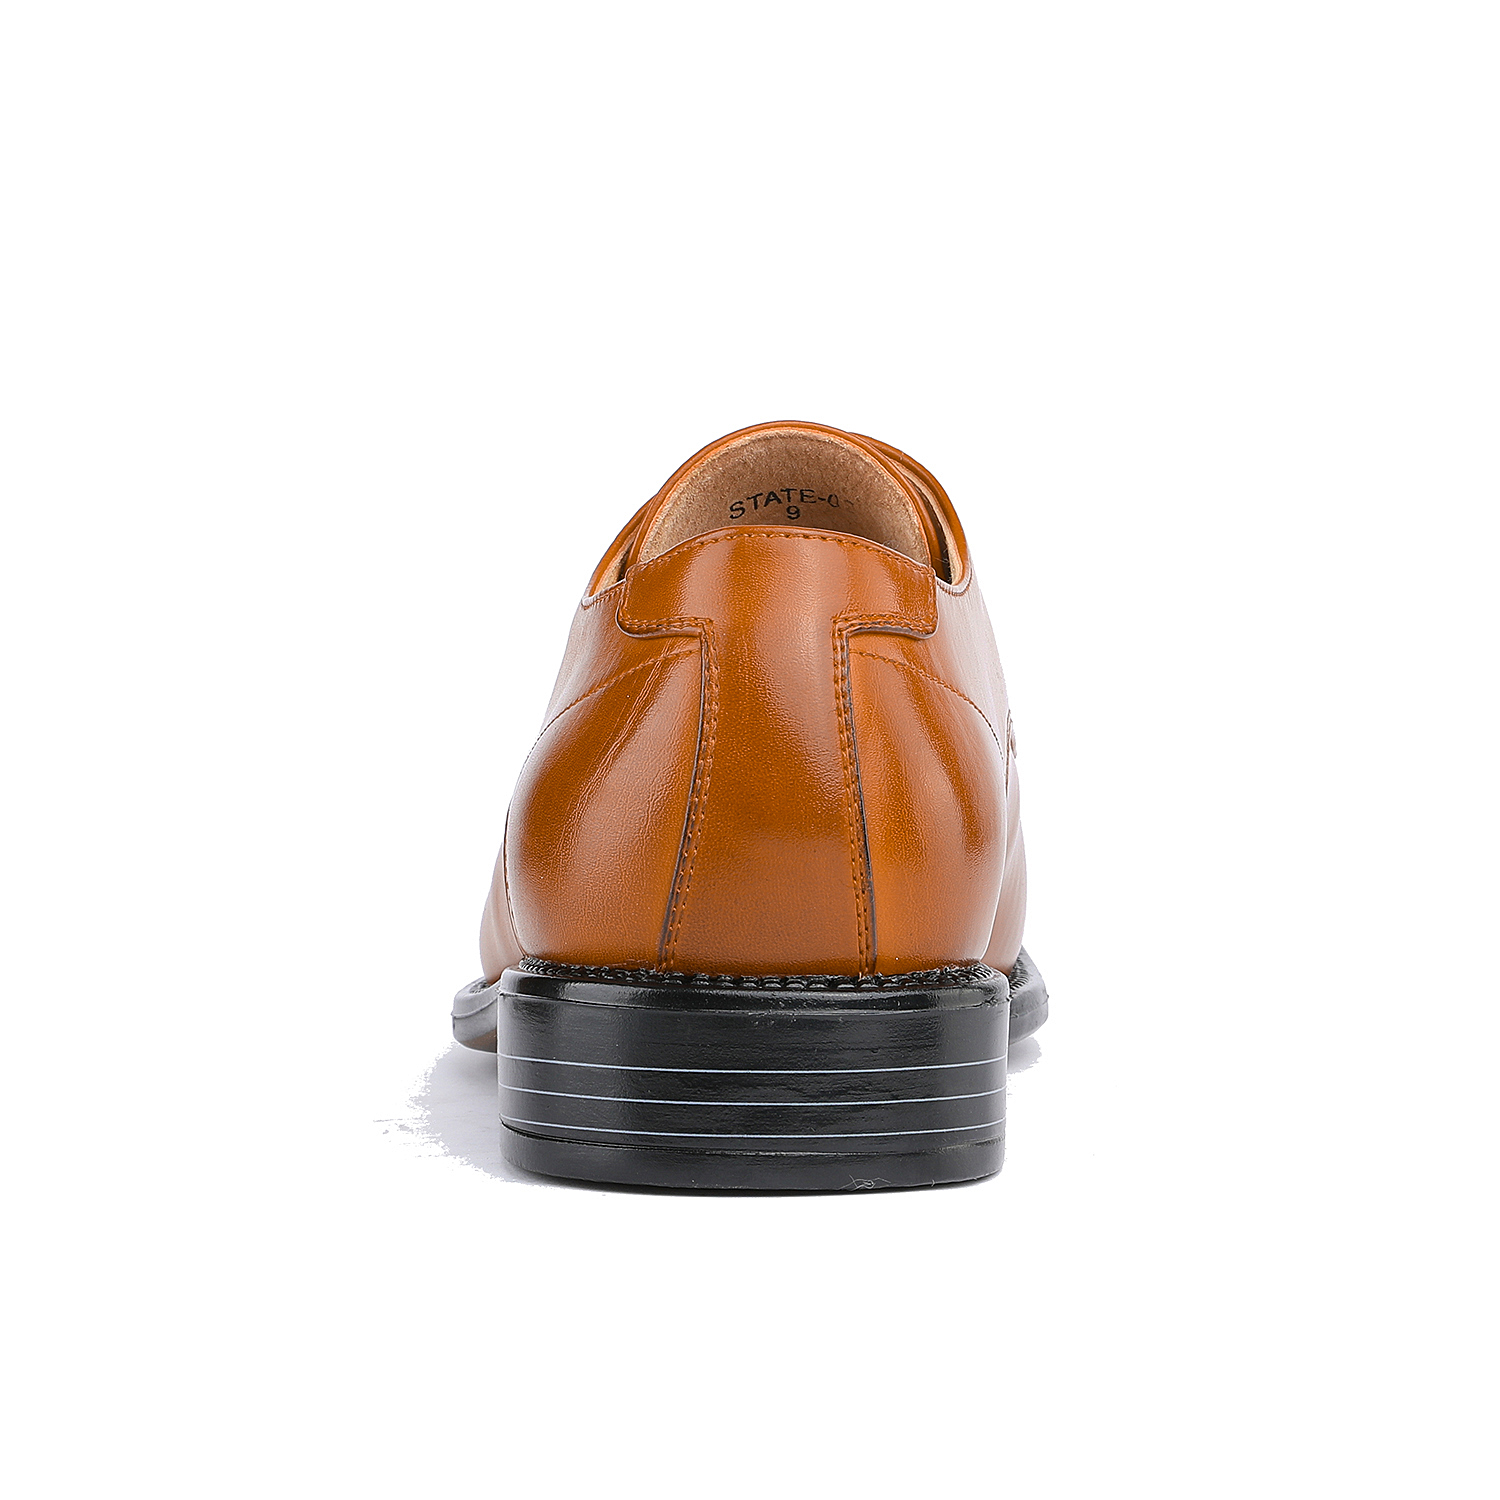 BRUNO-MARC-Men-STATE-Formal-Square-Toe-Leather-Lined-Slip-On-Dress-Loafers-Shoes thumbnail 29